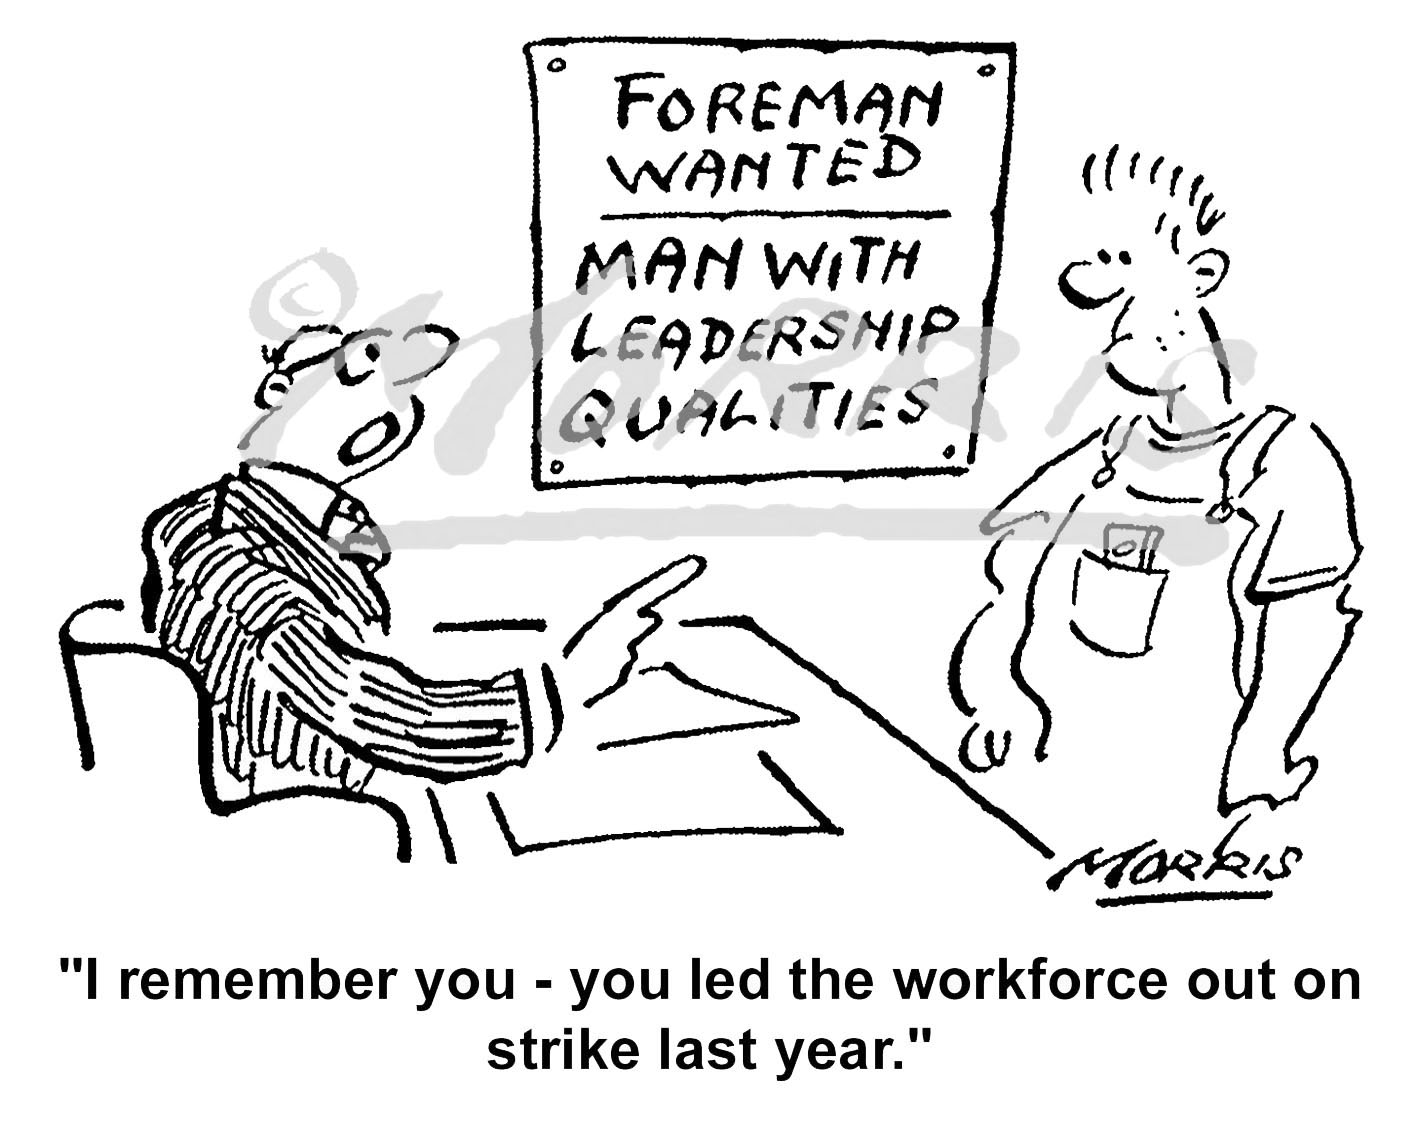 Shopfloor worker personnel interview cartoon – Ref: 5991bw